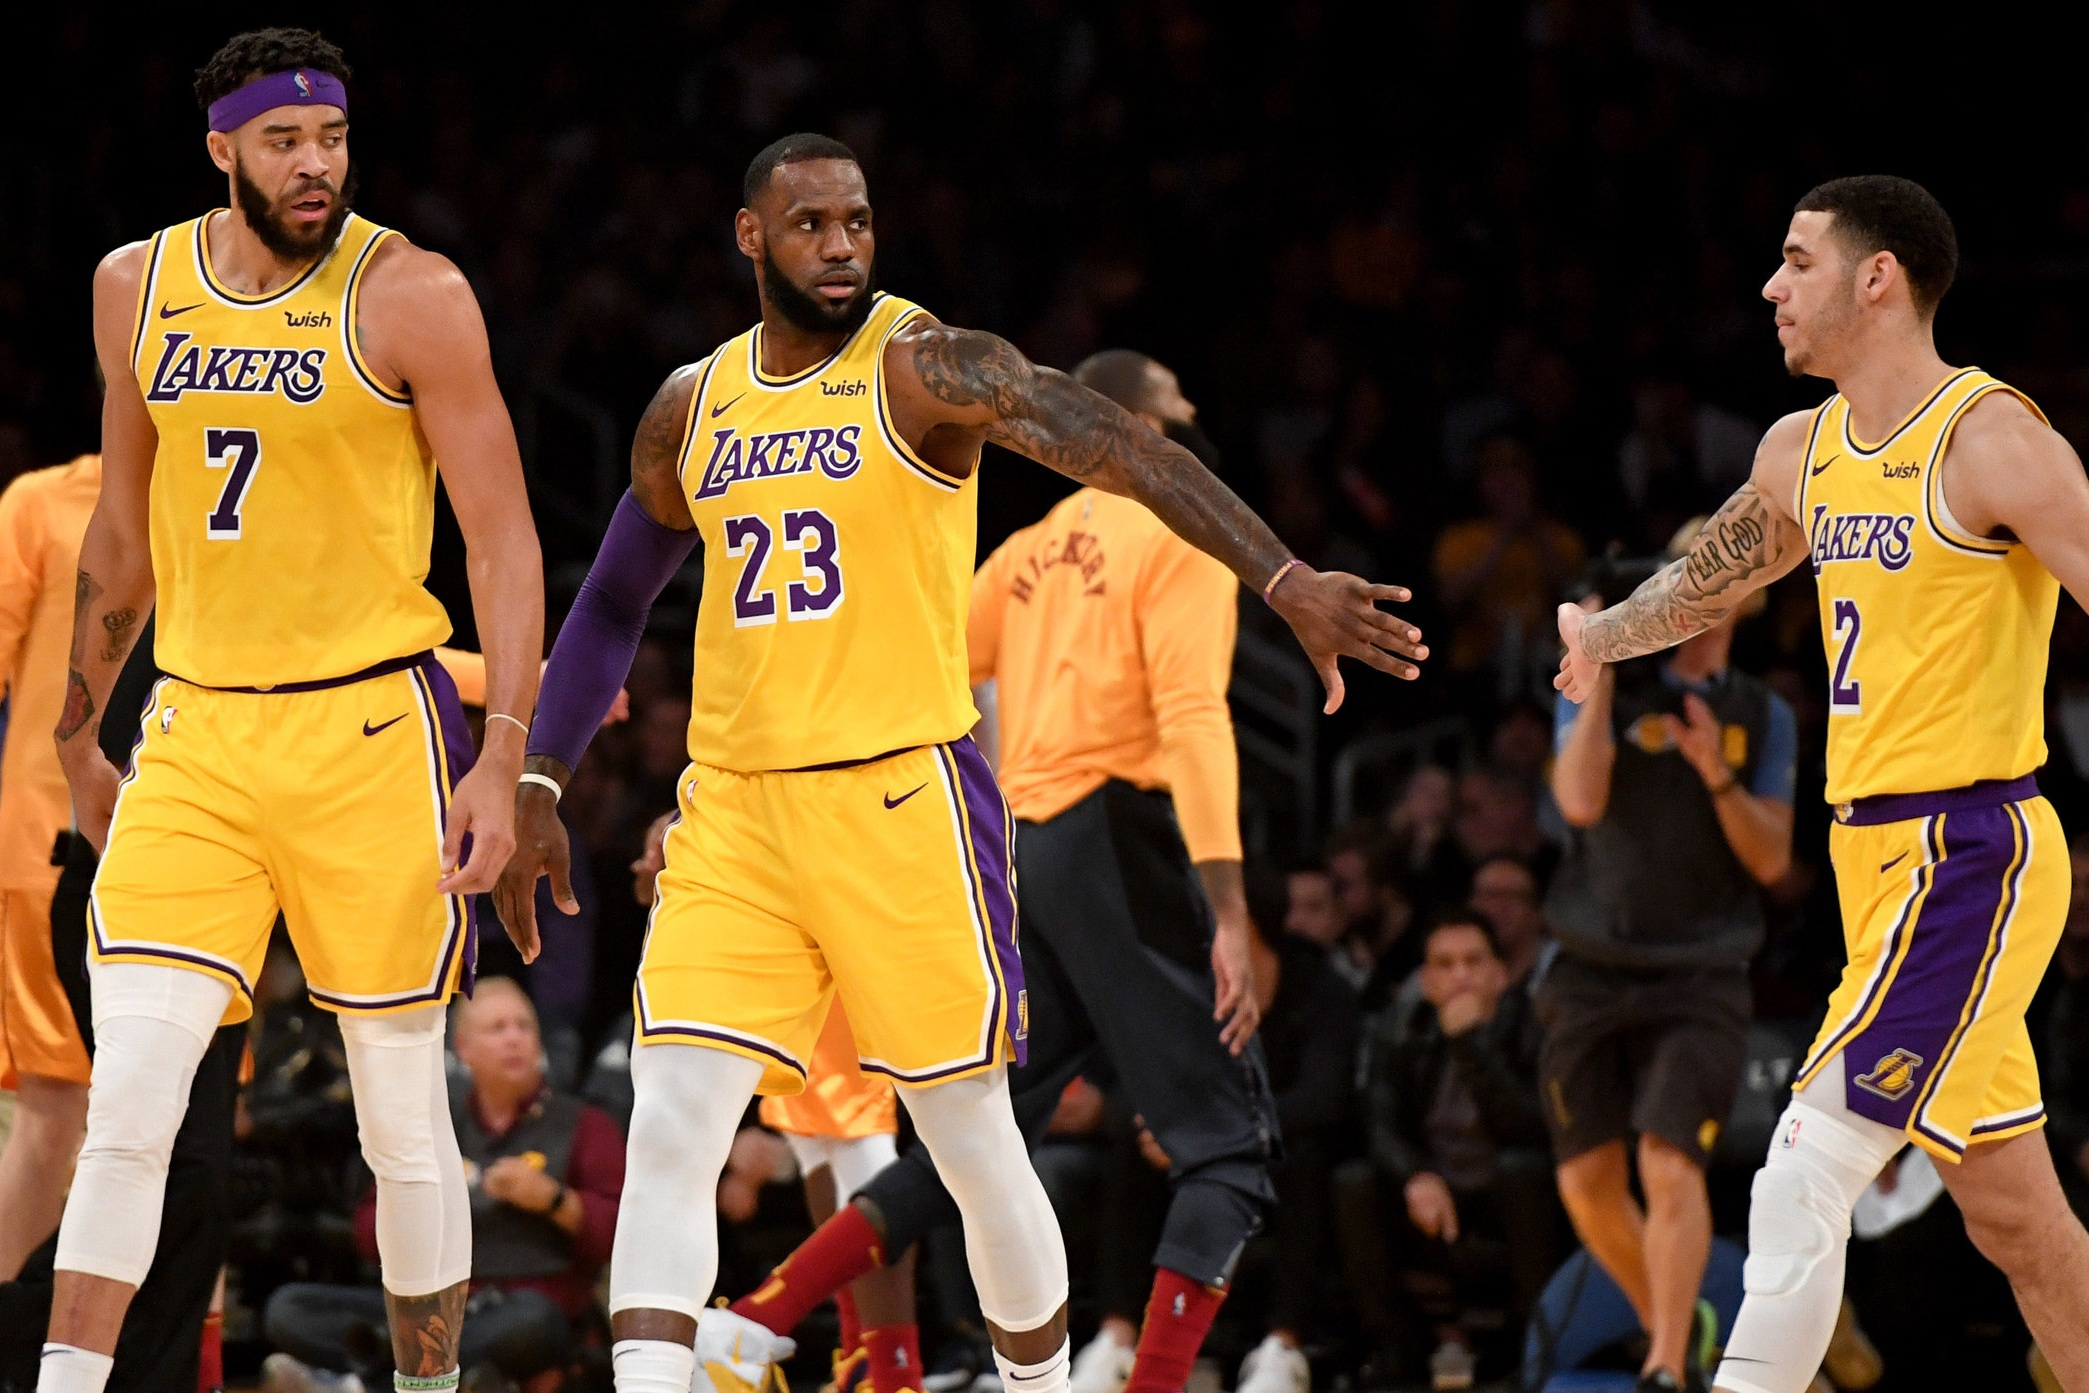 Lakers Tickets - 2 Tickets to a 2019-2020 regular season game in Section 205, Row 1, Seats 1 & 2. Includes a Lakers-themed Build-a-Bear.Valued at $225Starting bid $100